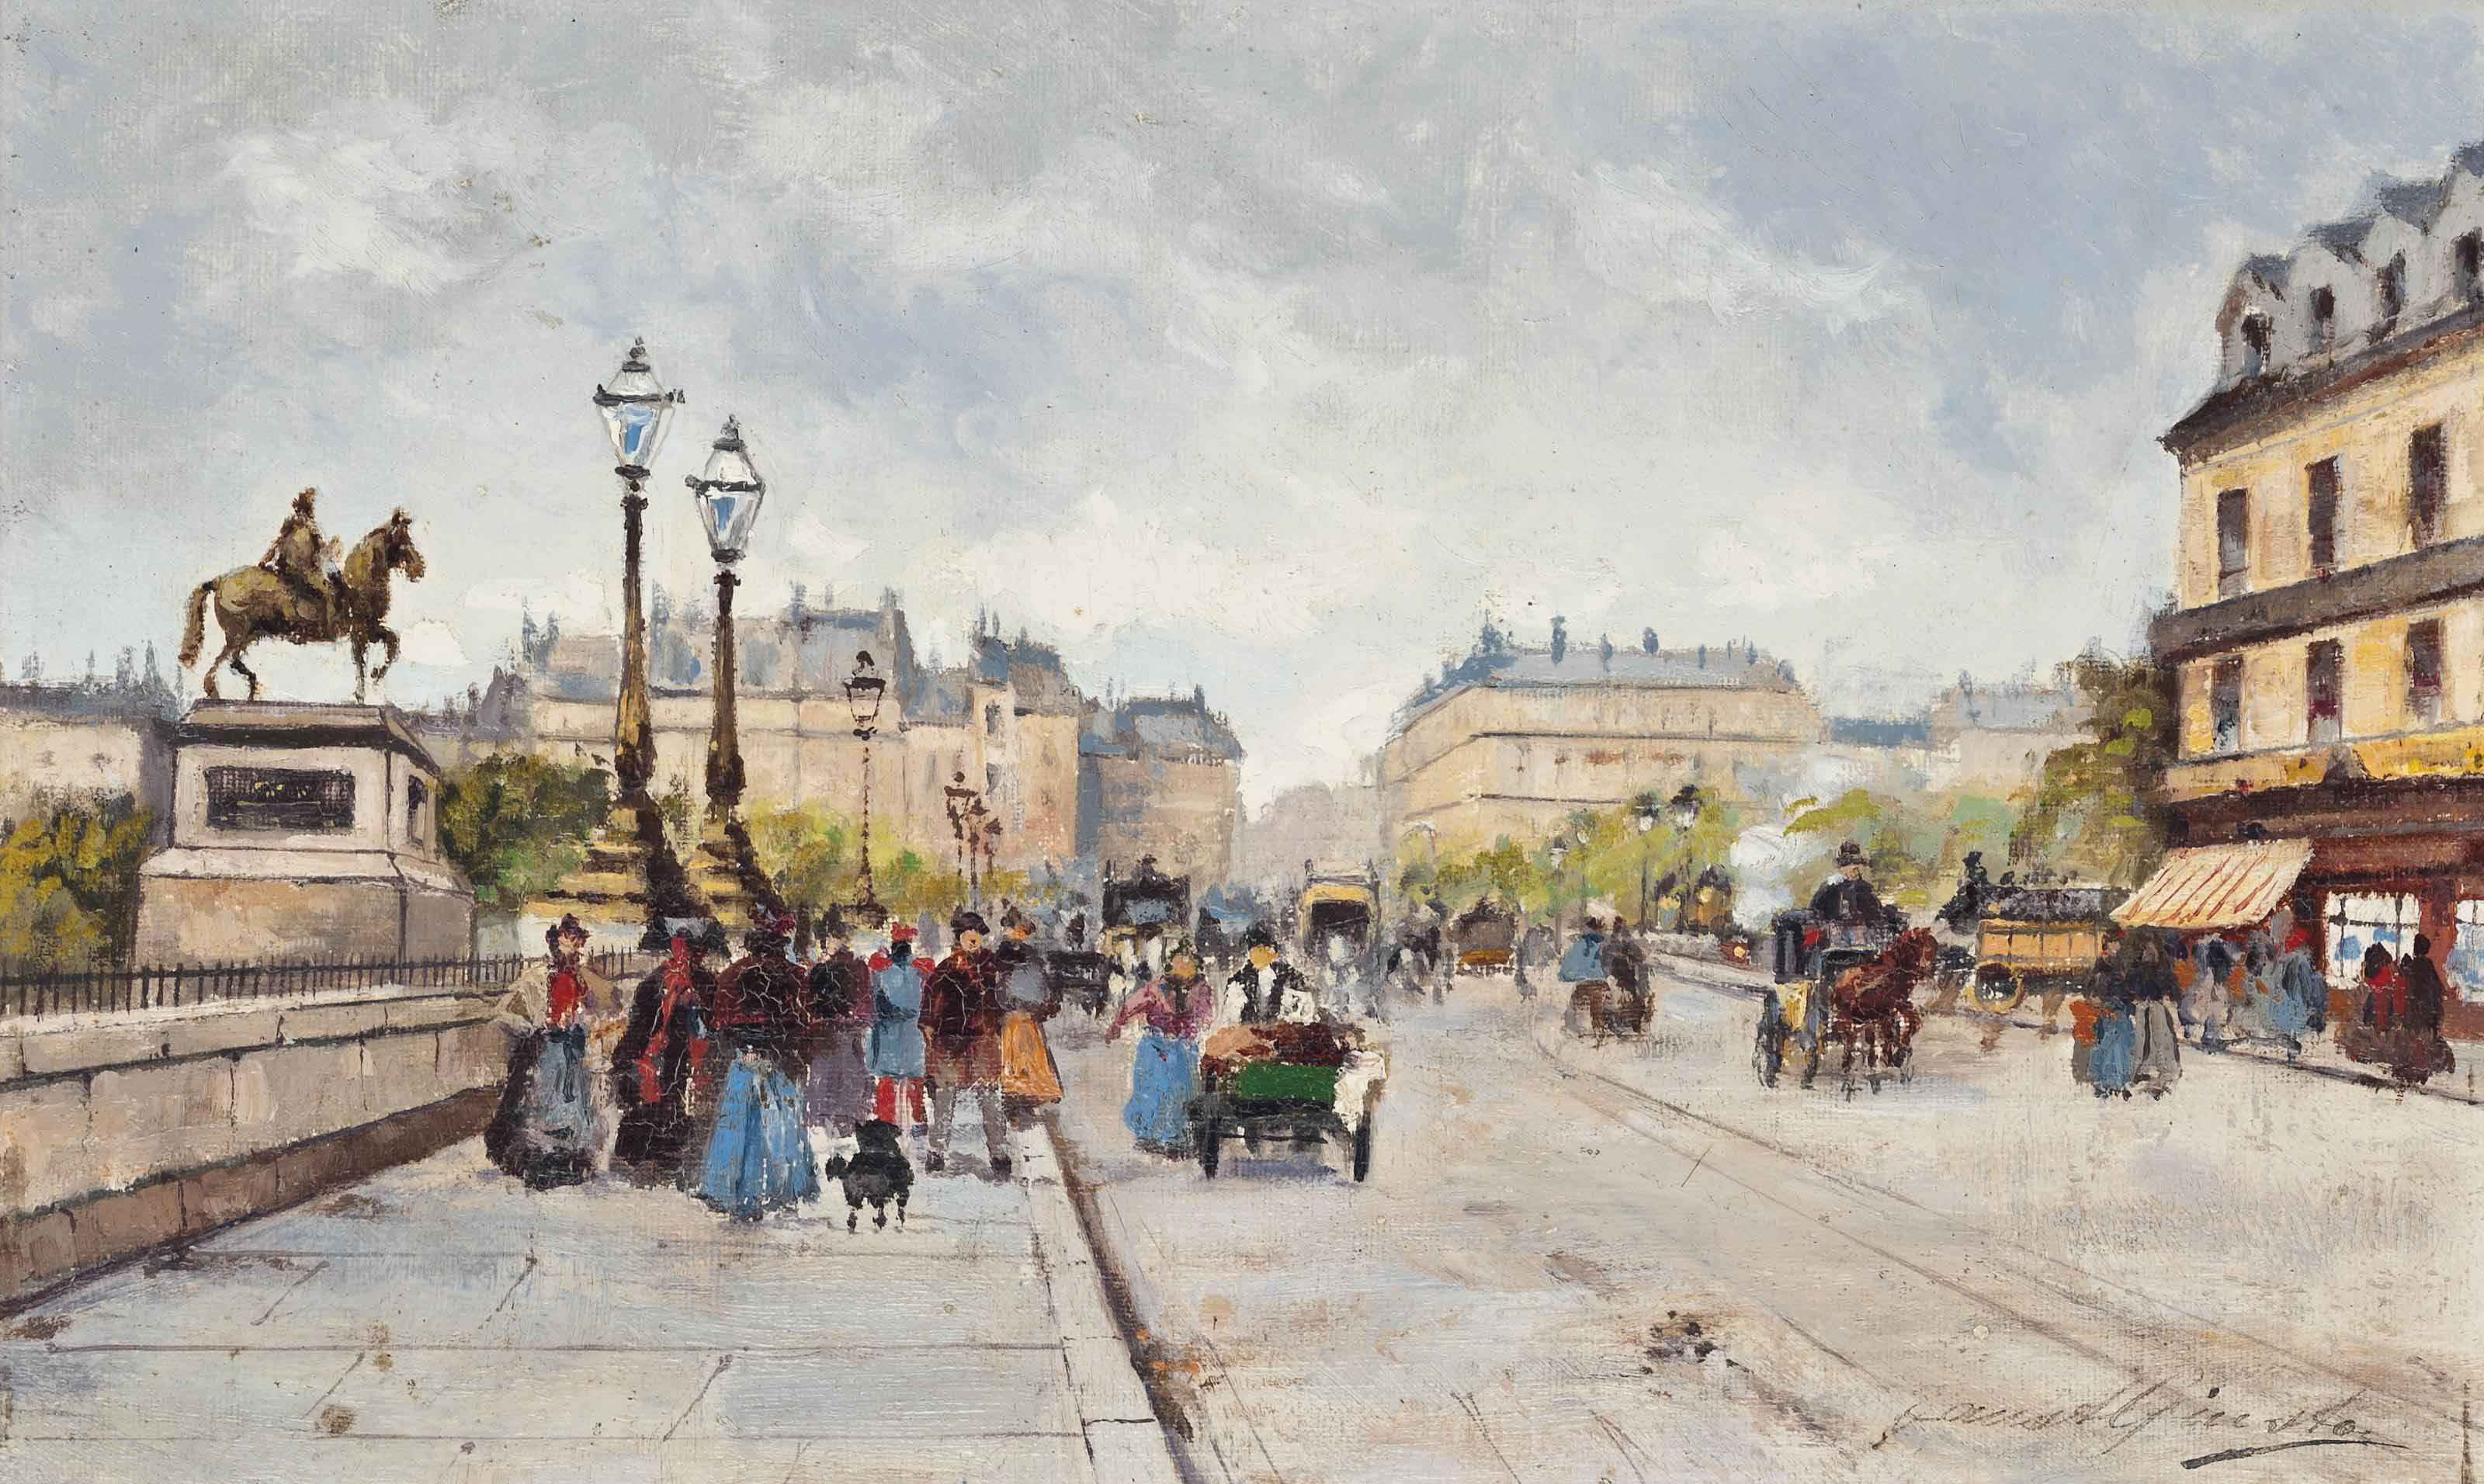 A busy day on the Pont Neuf, Paris